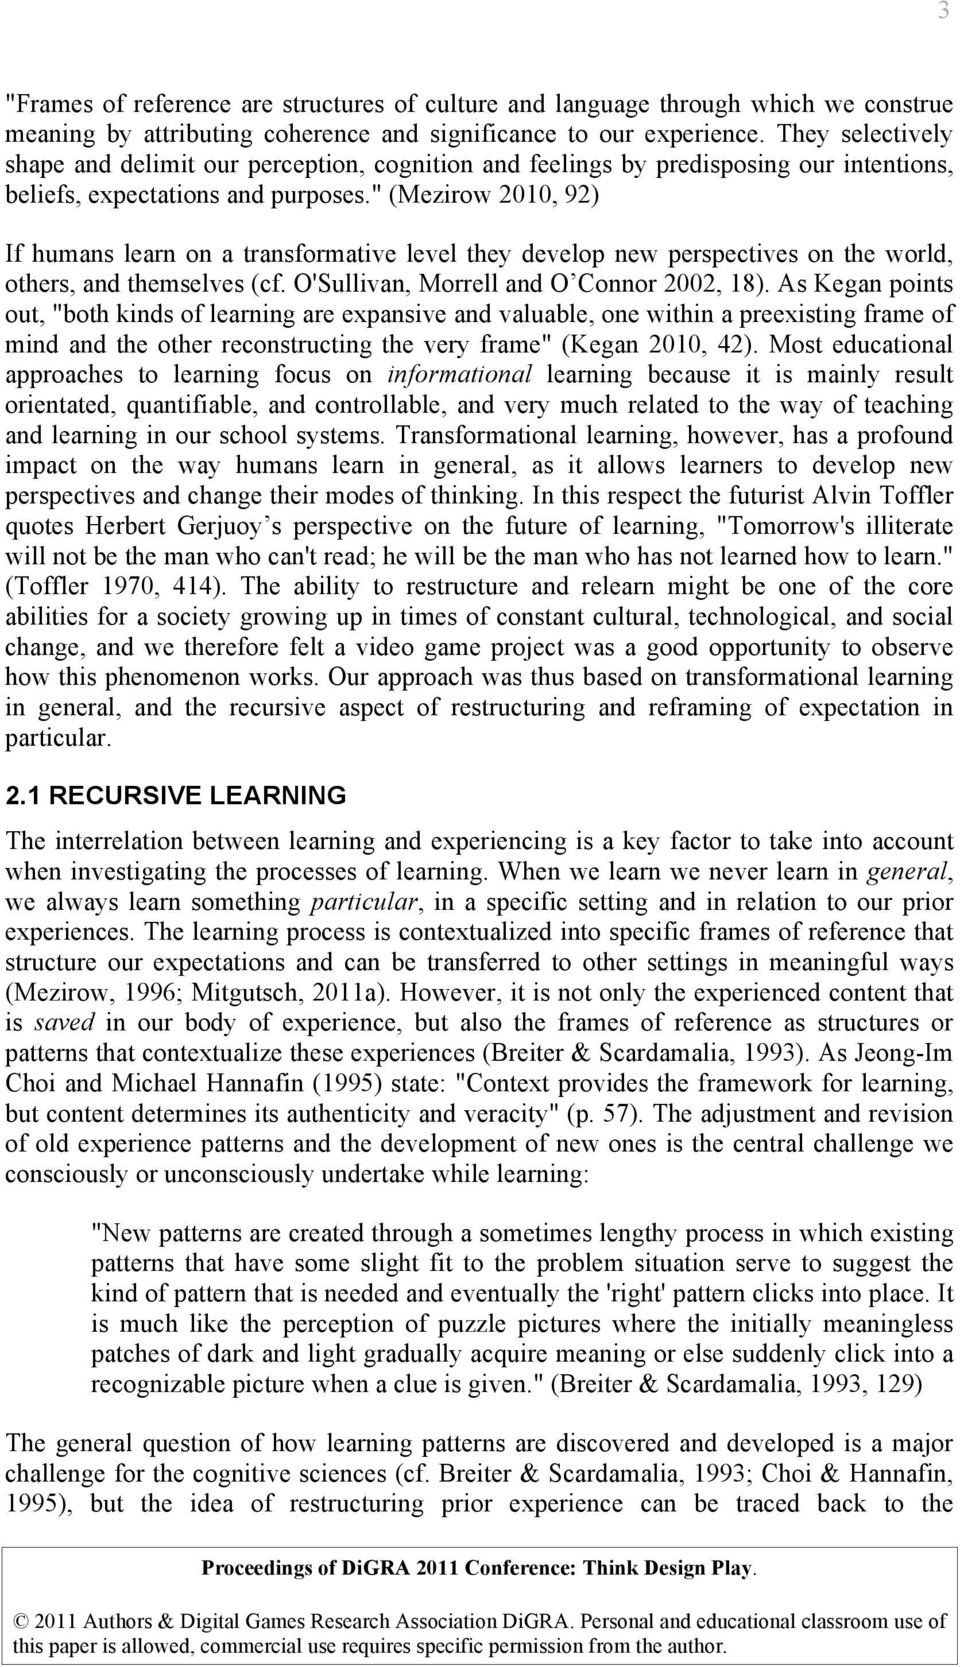 """ (Mezirow 2010, 92) If humans learn on a transformative level they develop new perspectives on the world, others, and themselves (cf. O'Sullivan, Morrell and O Connor 2002, 18)."